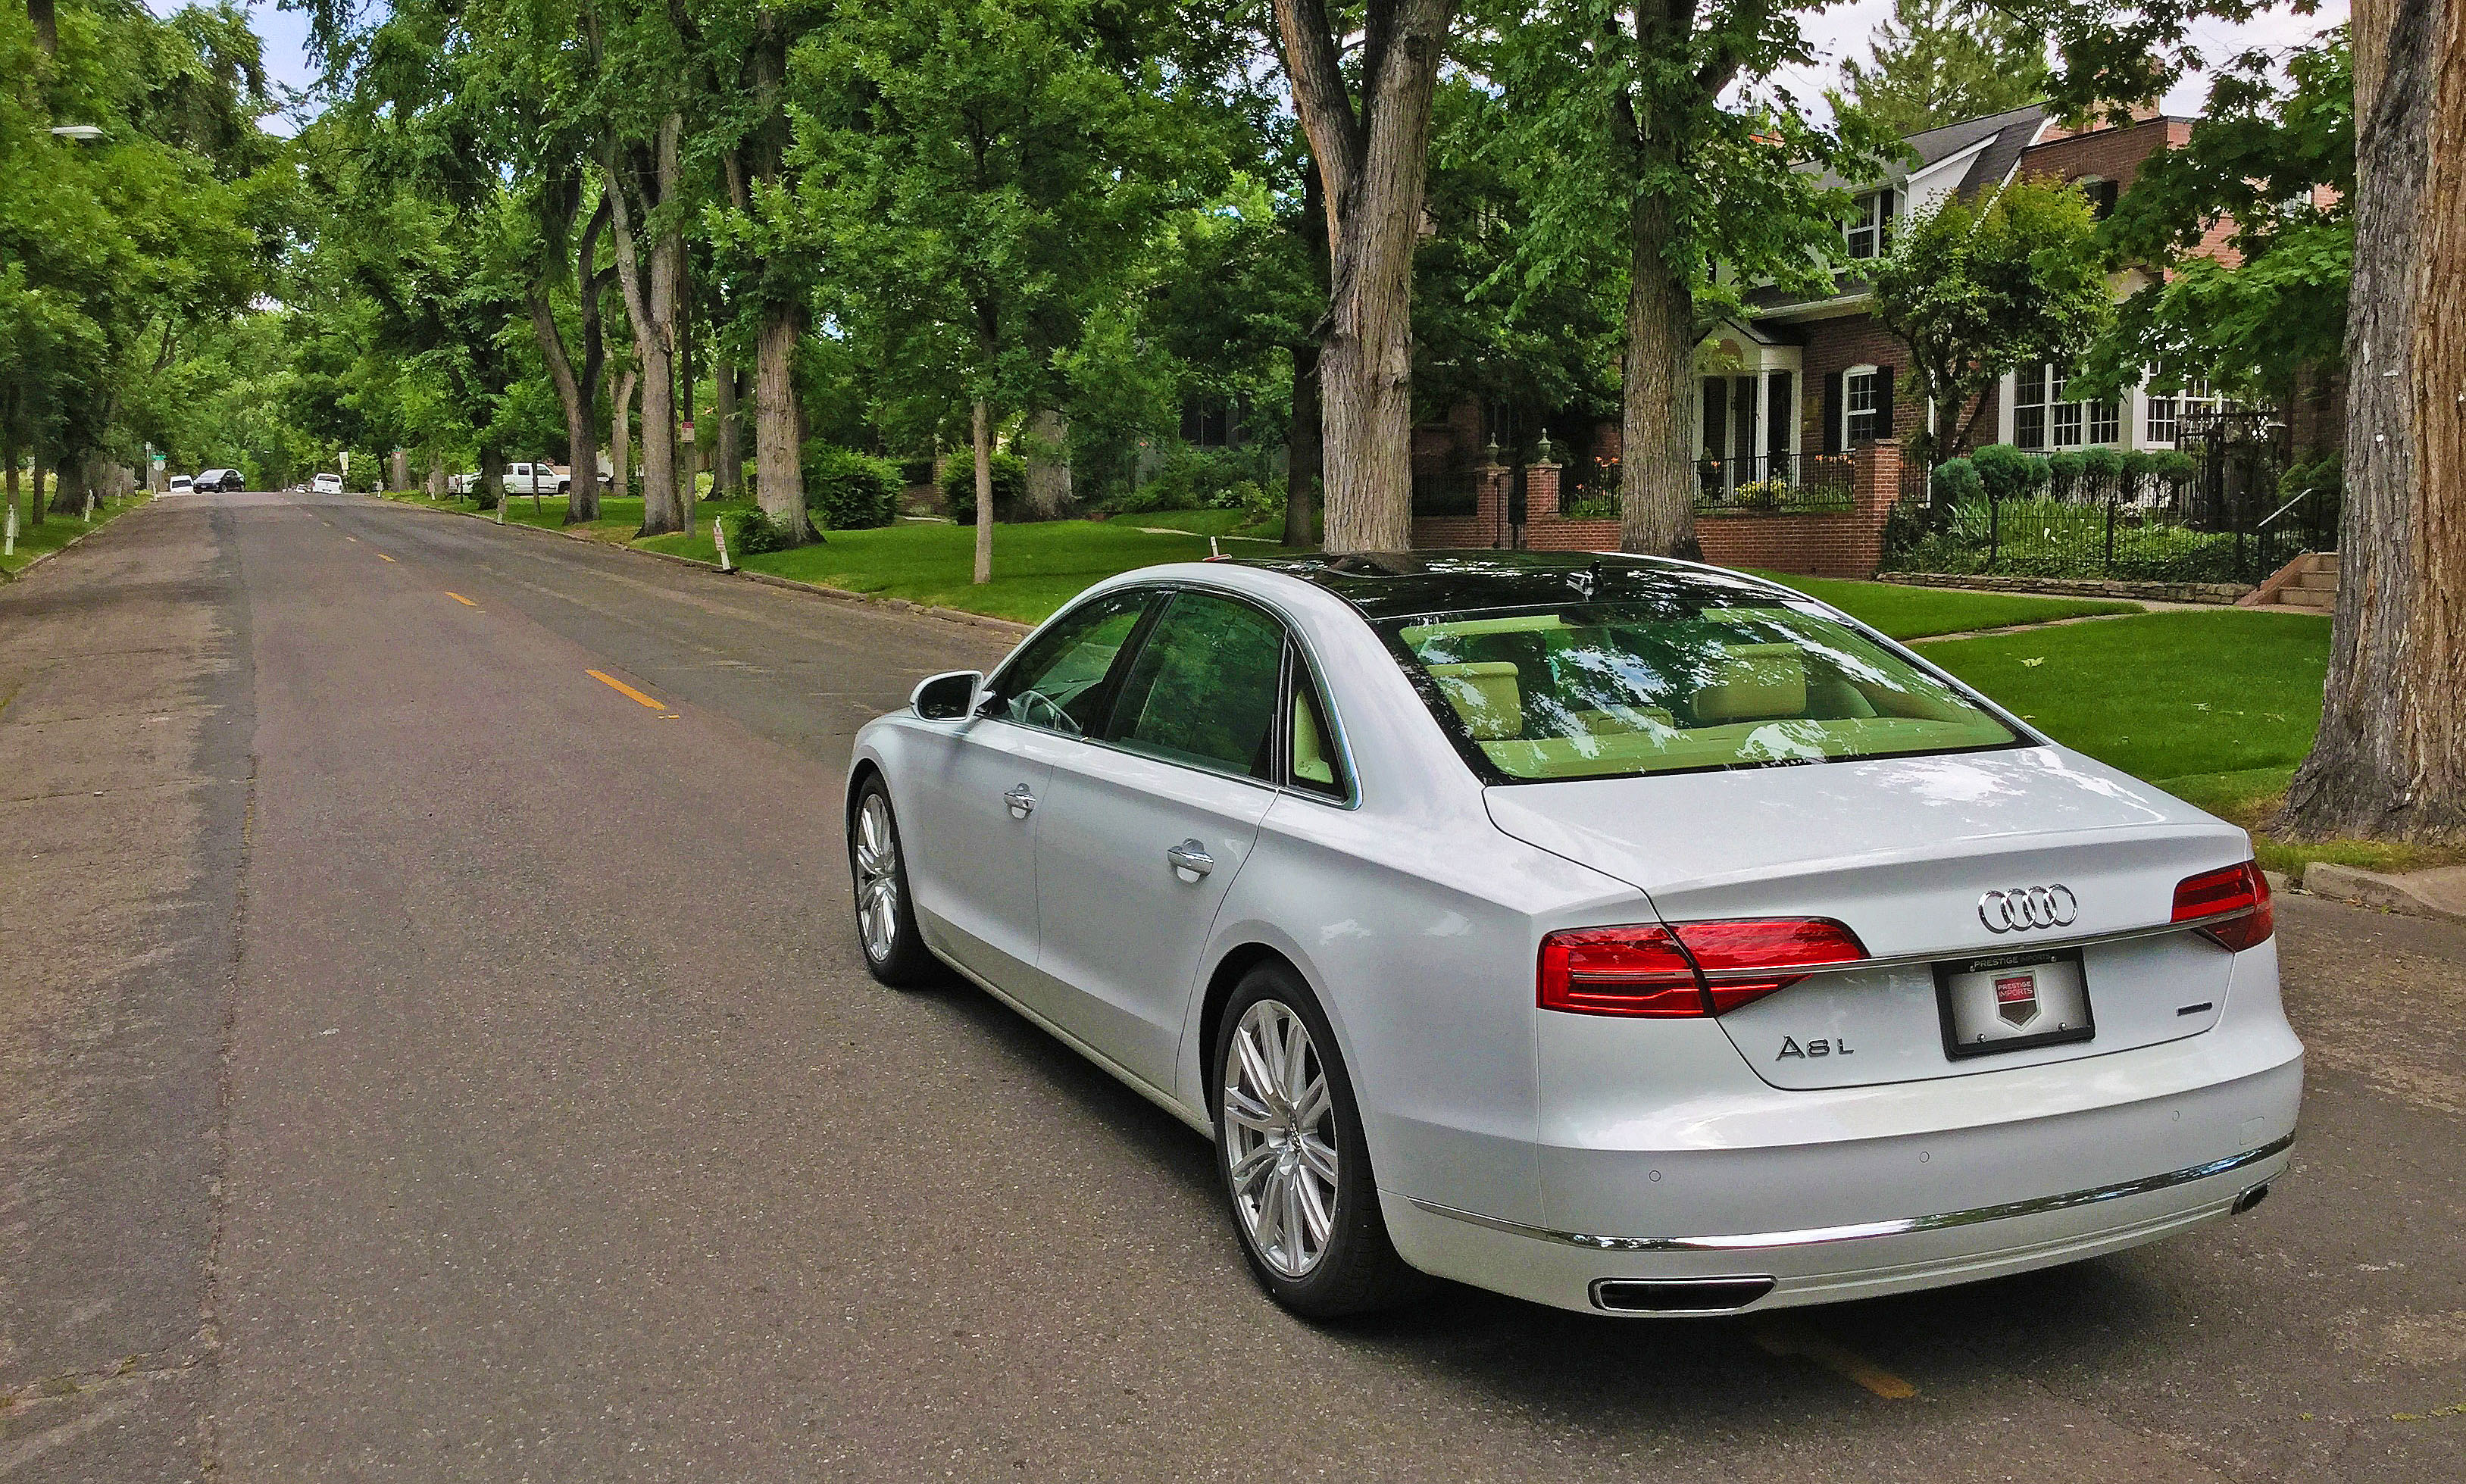 The Denver Country Club Neighborhood and the Audi A8